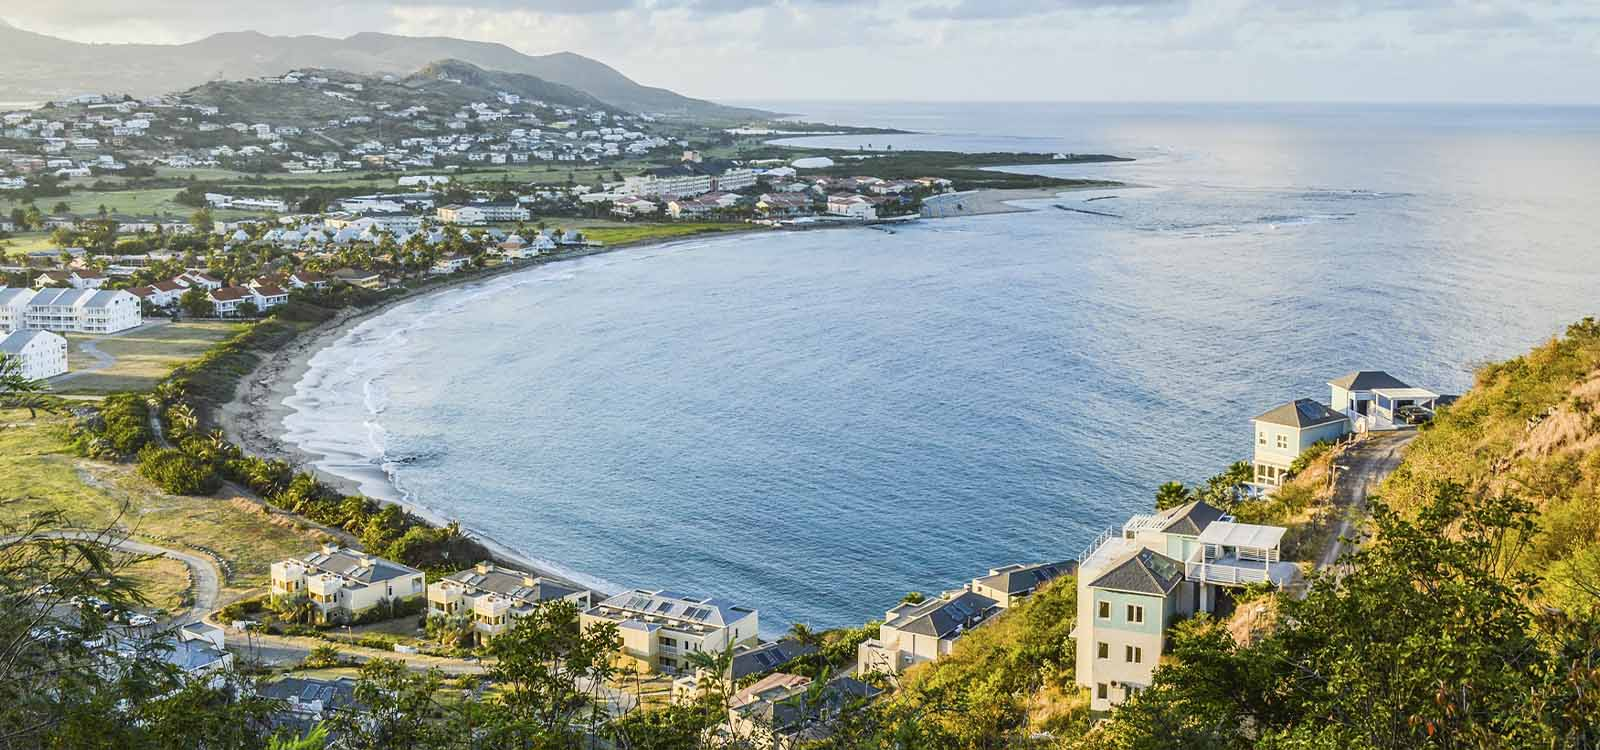 Aerial view of Basseterre, capital of St Kitts & Nevis.